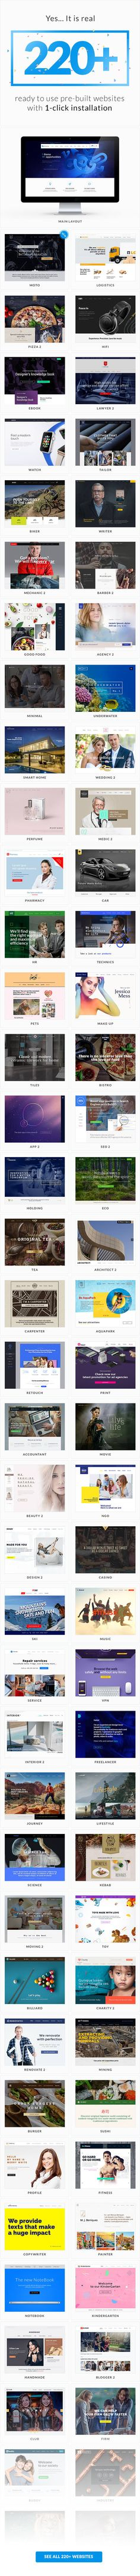 BeTheme v14.8 Download Free BeTheme Nulled Themes Download BeTheme WordPress ThemeNulled  Themeforest BeTheme v14.8 Nulled Theme BeTheme WordPress Nulled Theme Download BeTheme v14.8 Nulled Theme BeTheme Latest Version Nulled Themes Free download BeTheme v14.8 wordpress Theme  BeTheme v14.8 is full of different pre-built websites so you can easily import any demo website within seconds at 1 click. Constantly we add new demos at users requests.  So far we created websites for: electric…